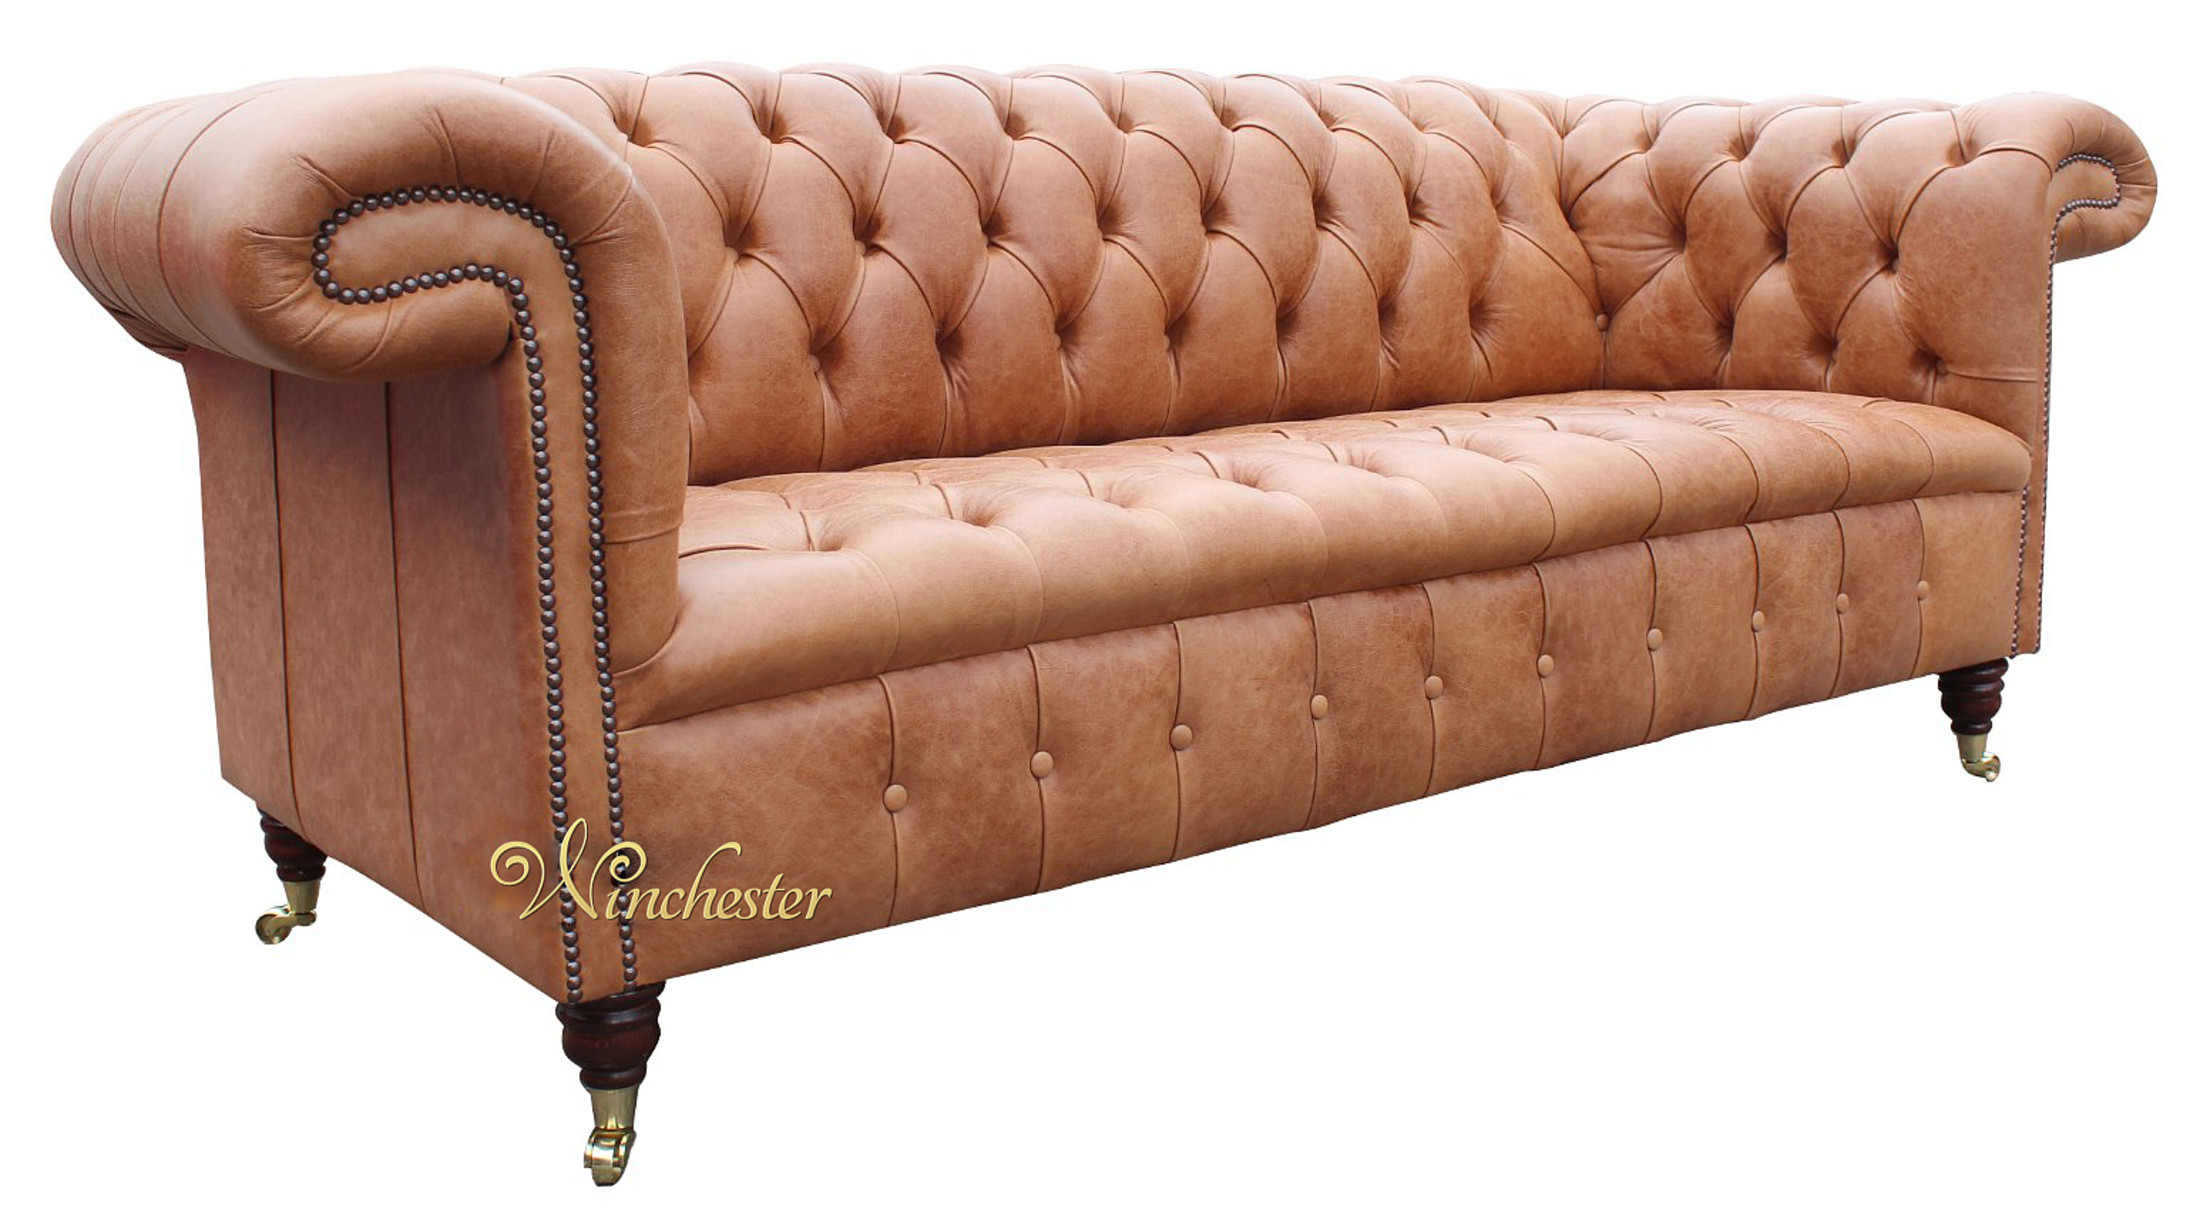 ... Chesterfield 1857 Old English Saddle Leather Sofa Wc ...